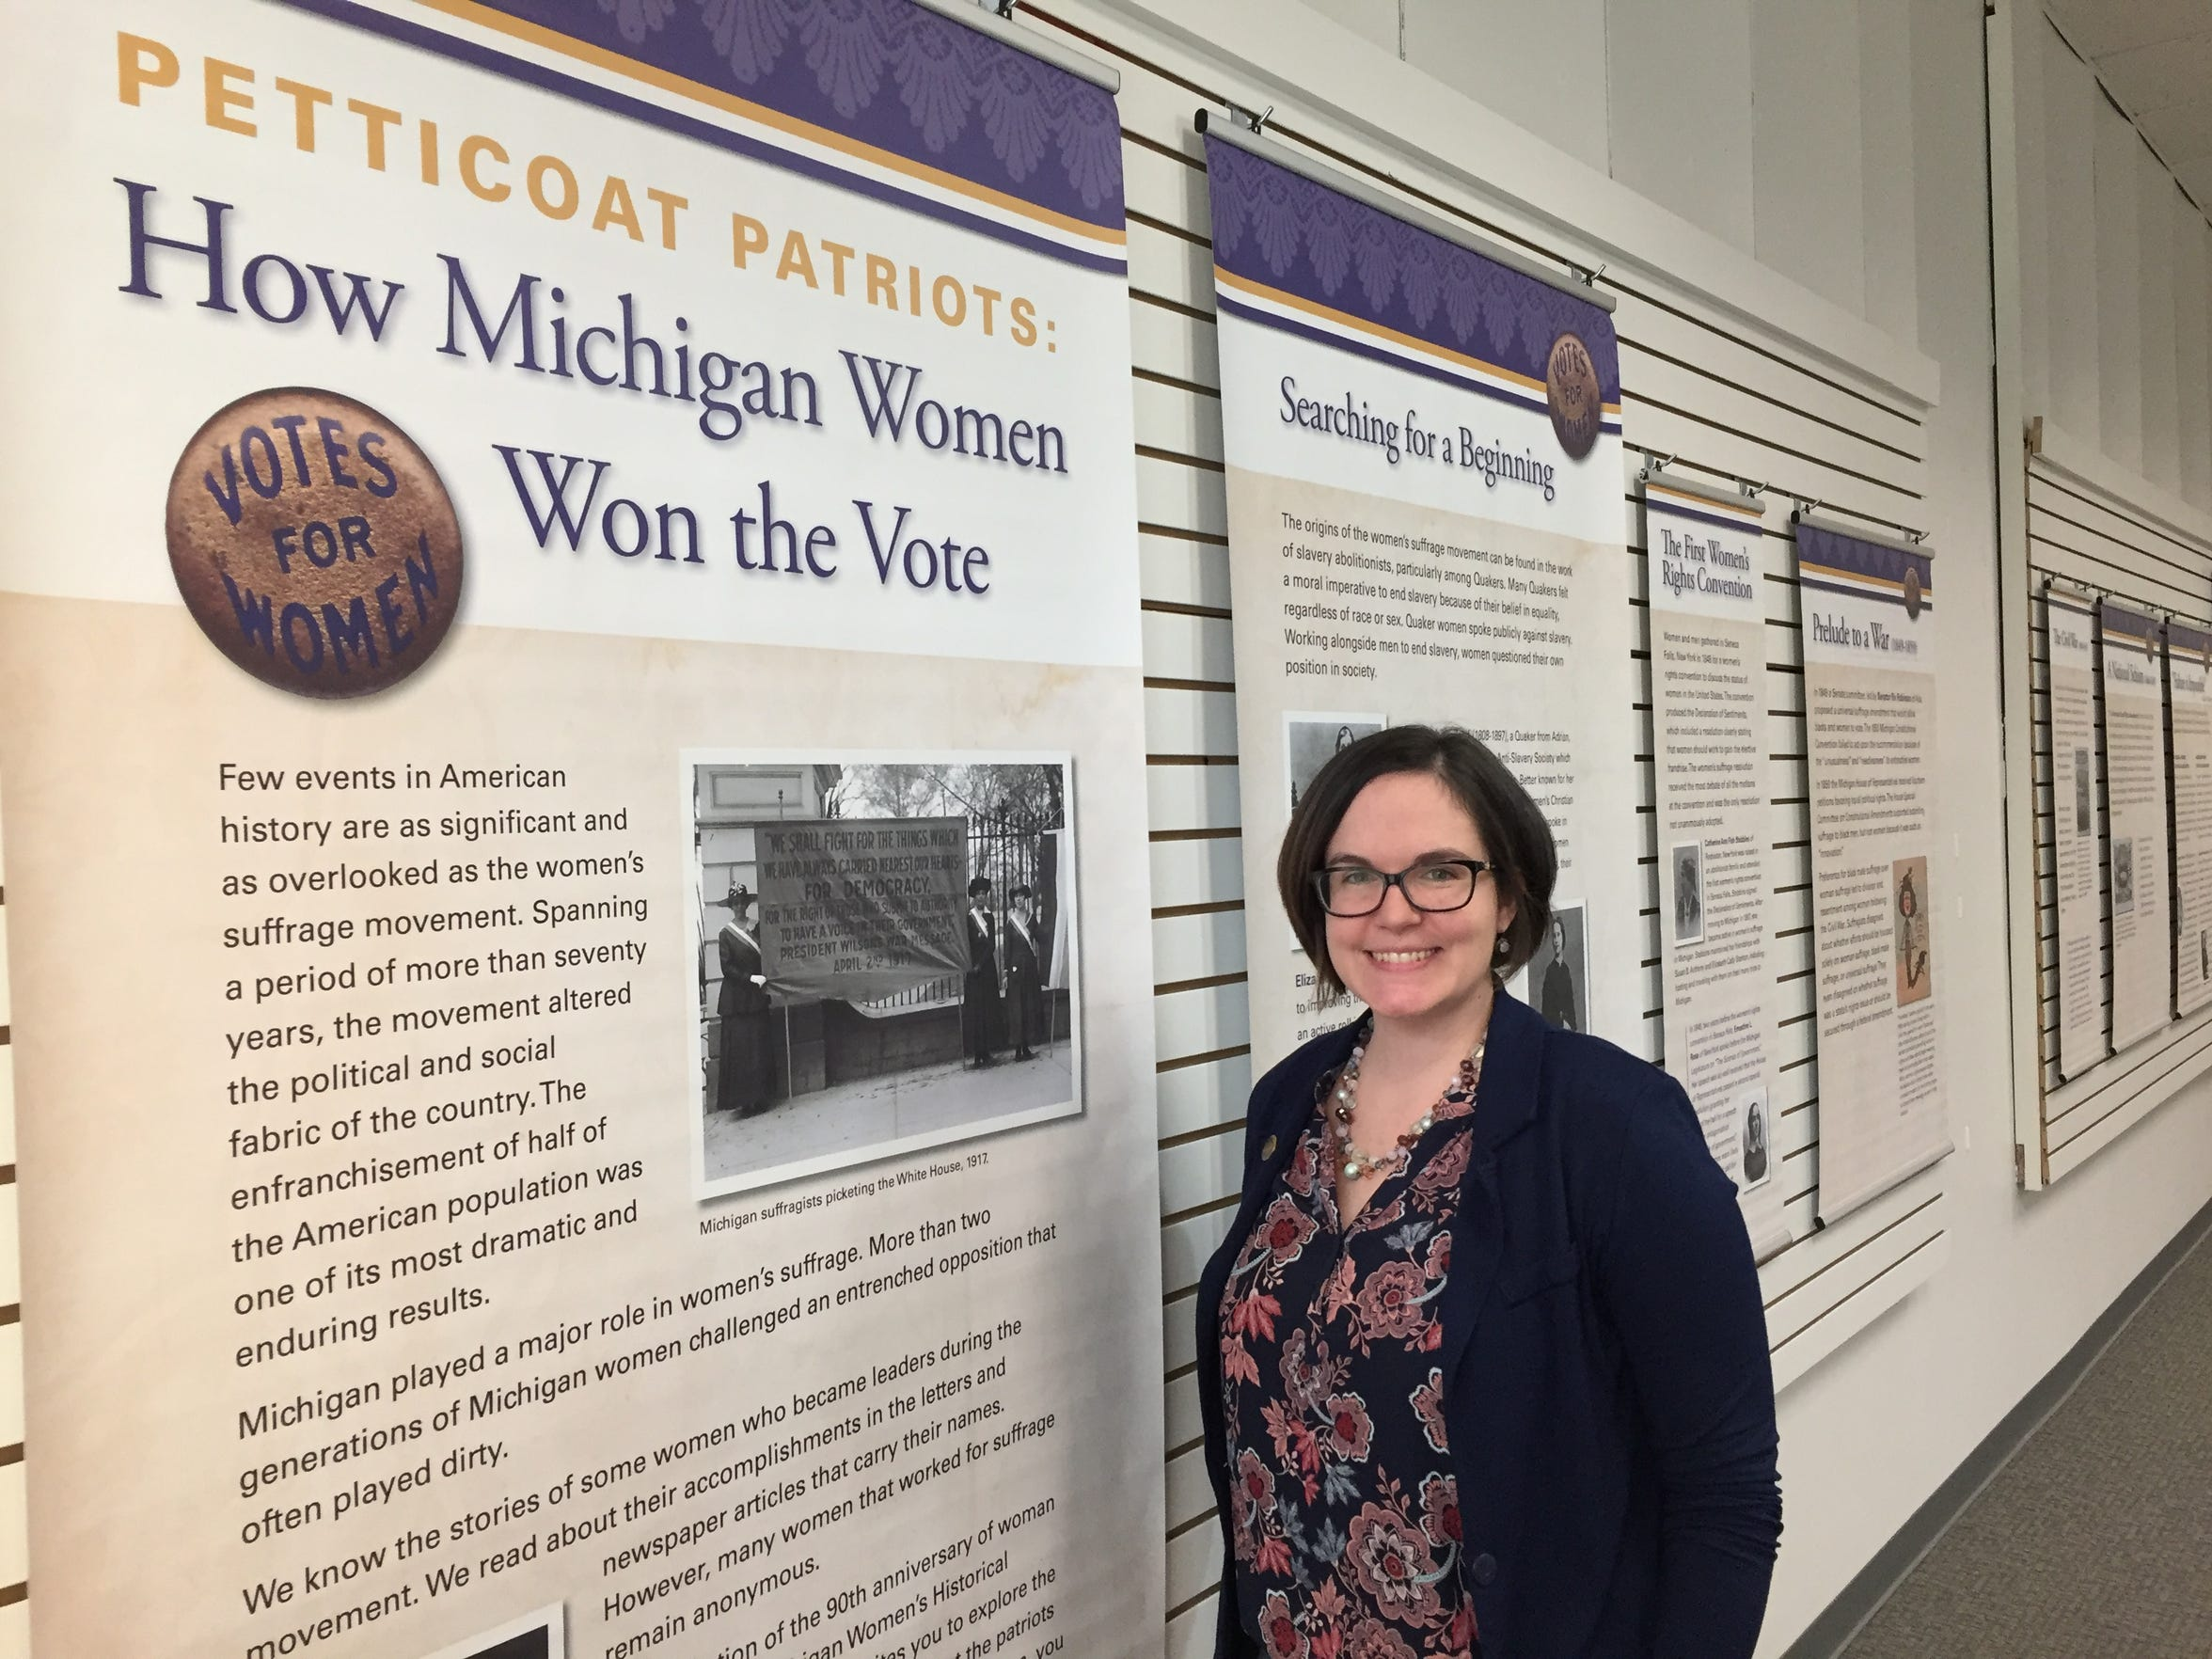 Caitlyn Perry Dial, executive director of the Michigan